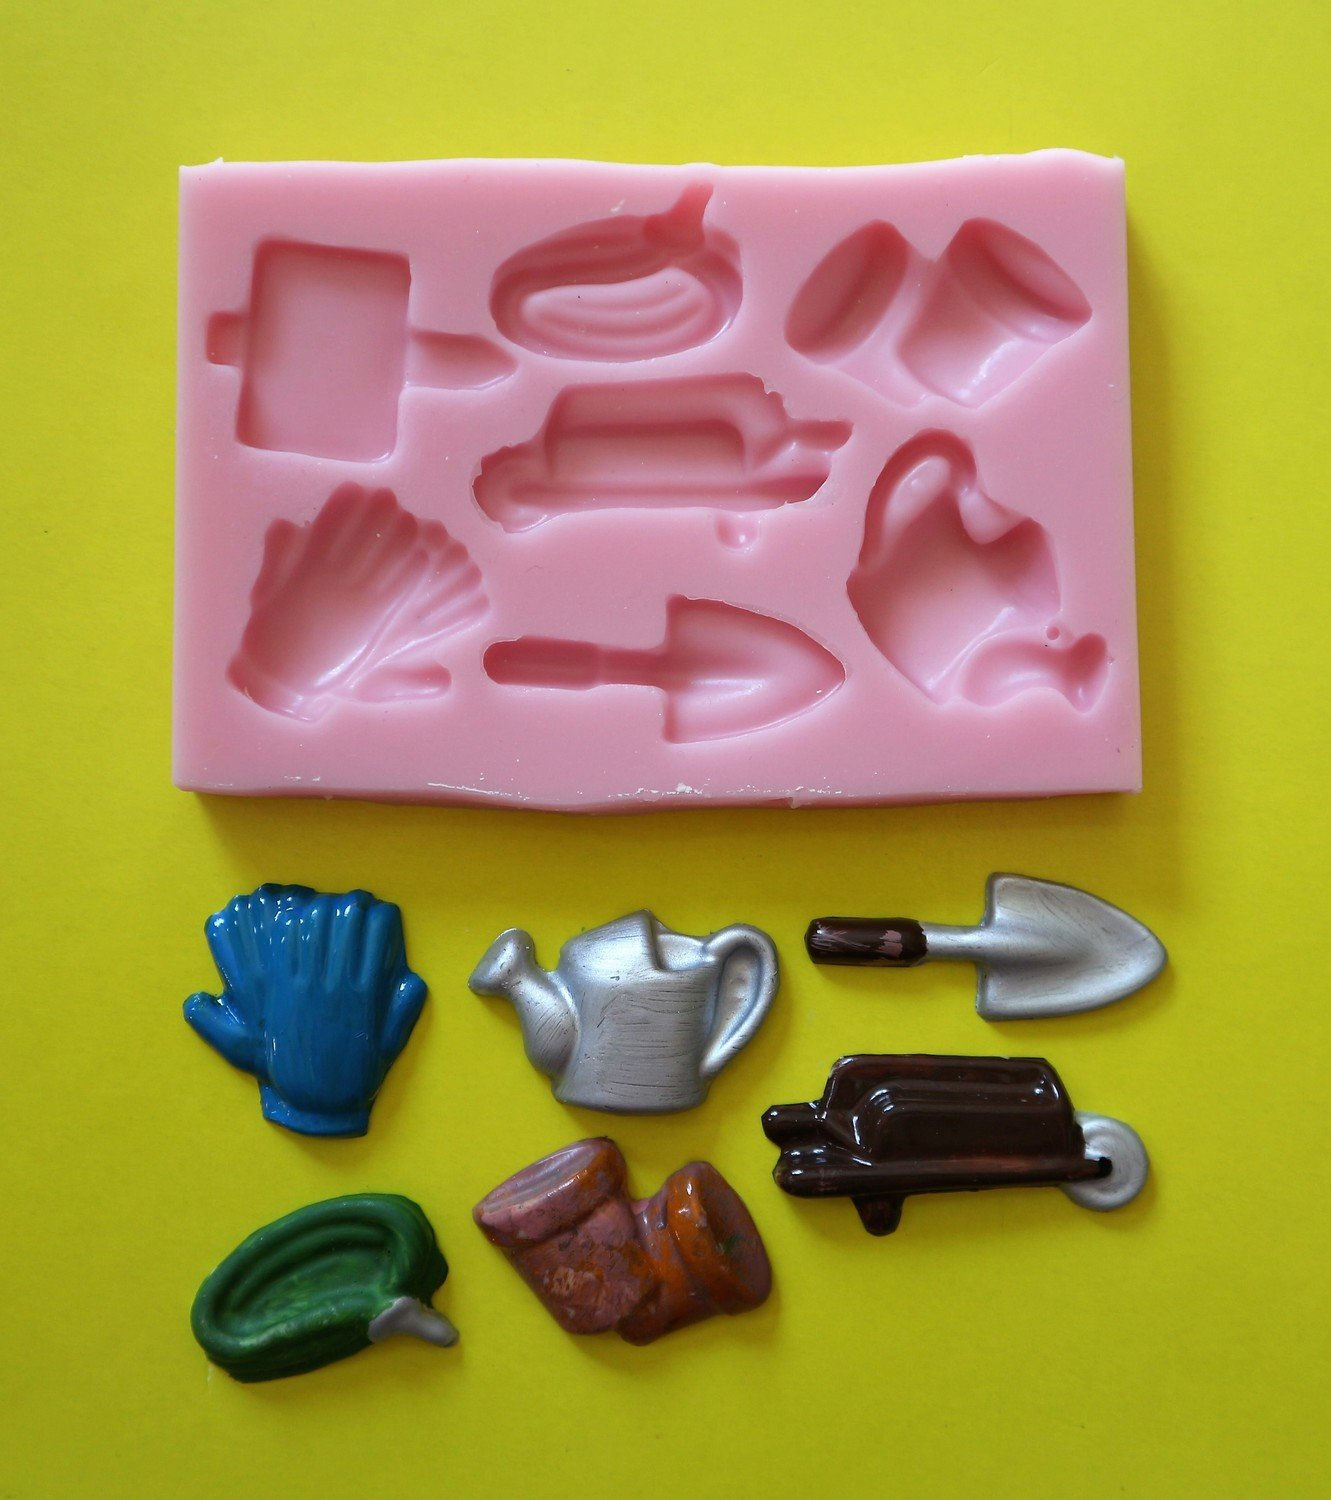 GARDENING SET 001 SILICONE MOULD